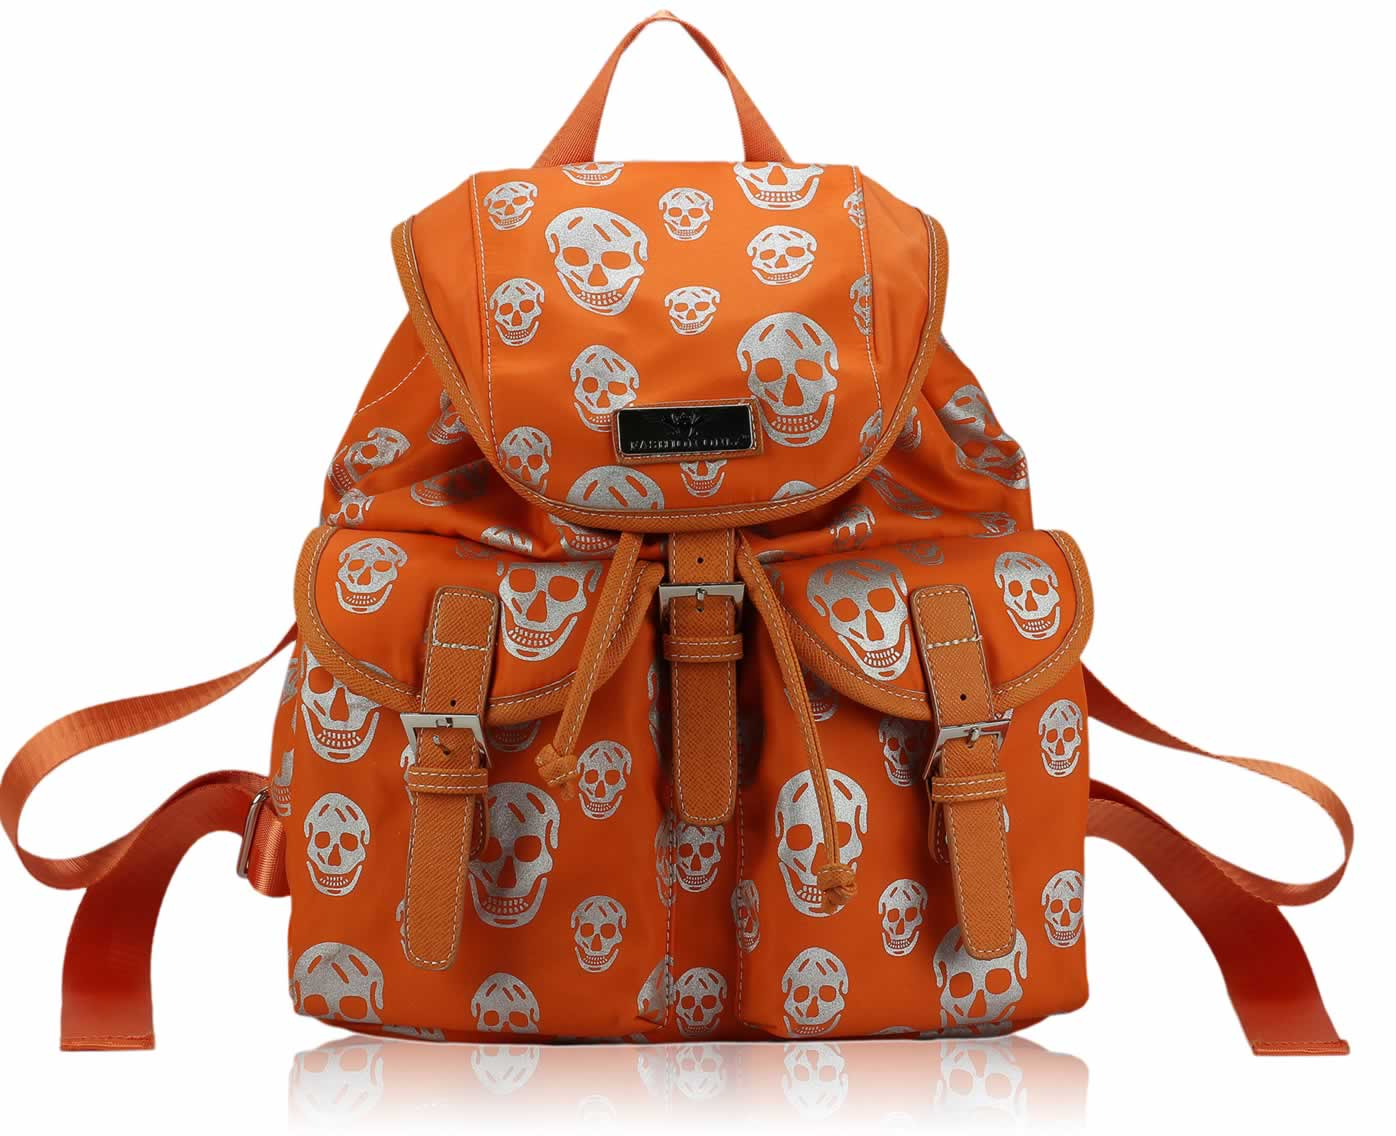 Batoh LS00271 - Orange Skull Print Unisex Rucksack Shoulder Bag